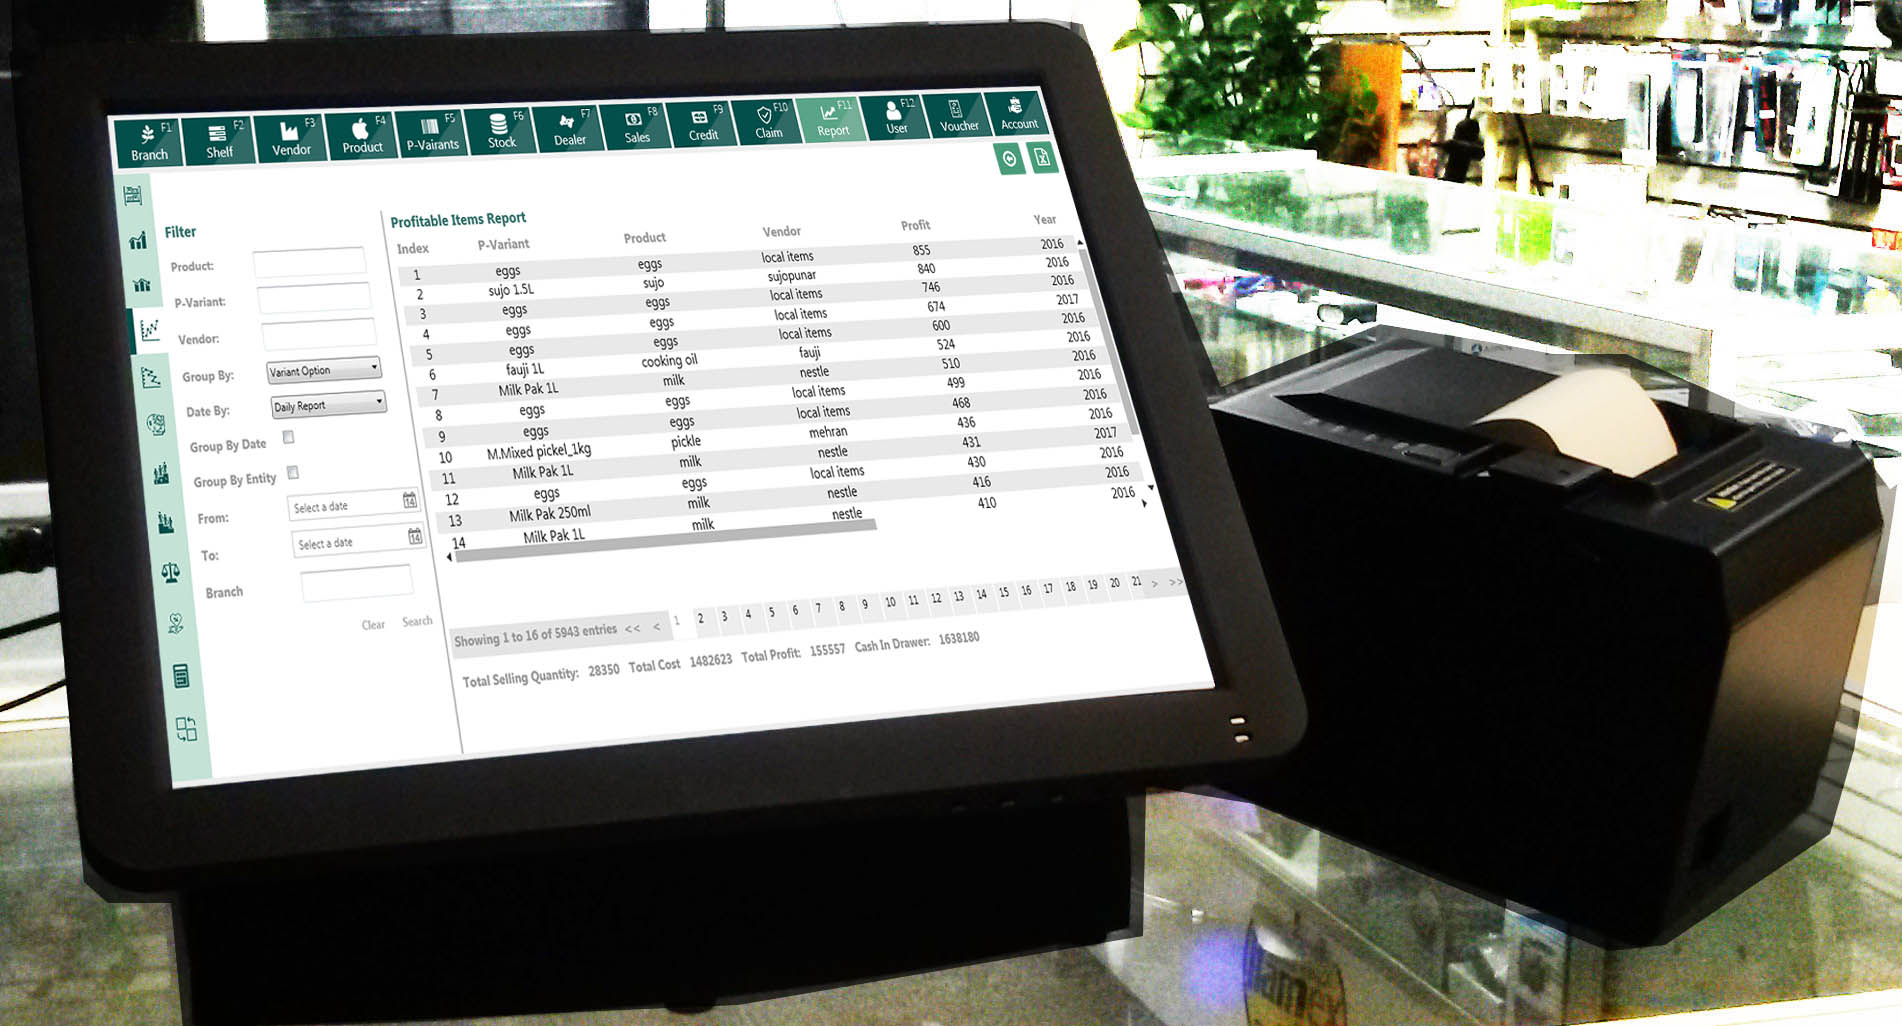 pos-shopober-screen